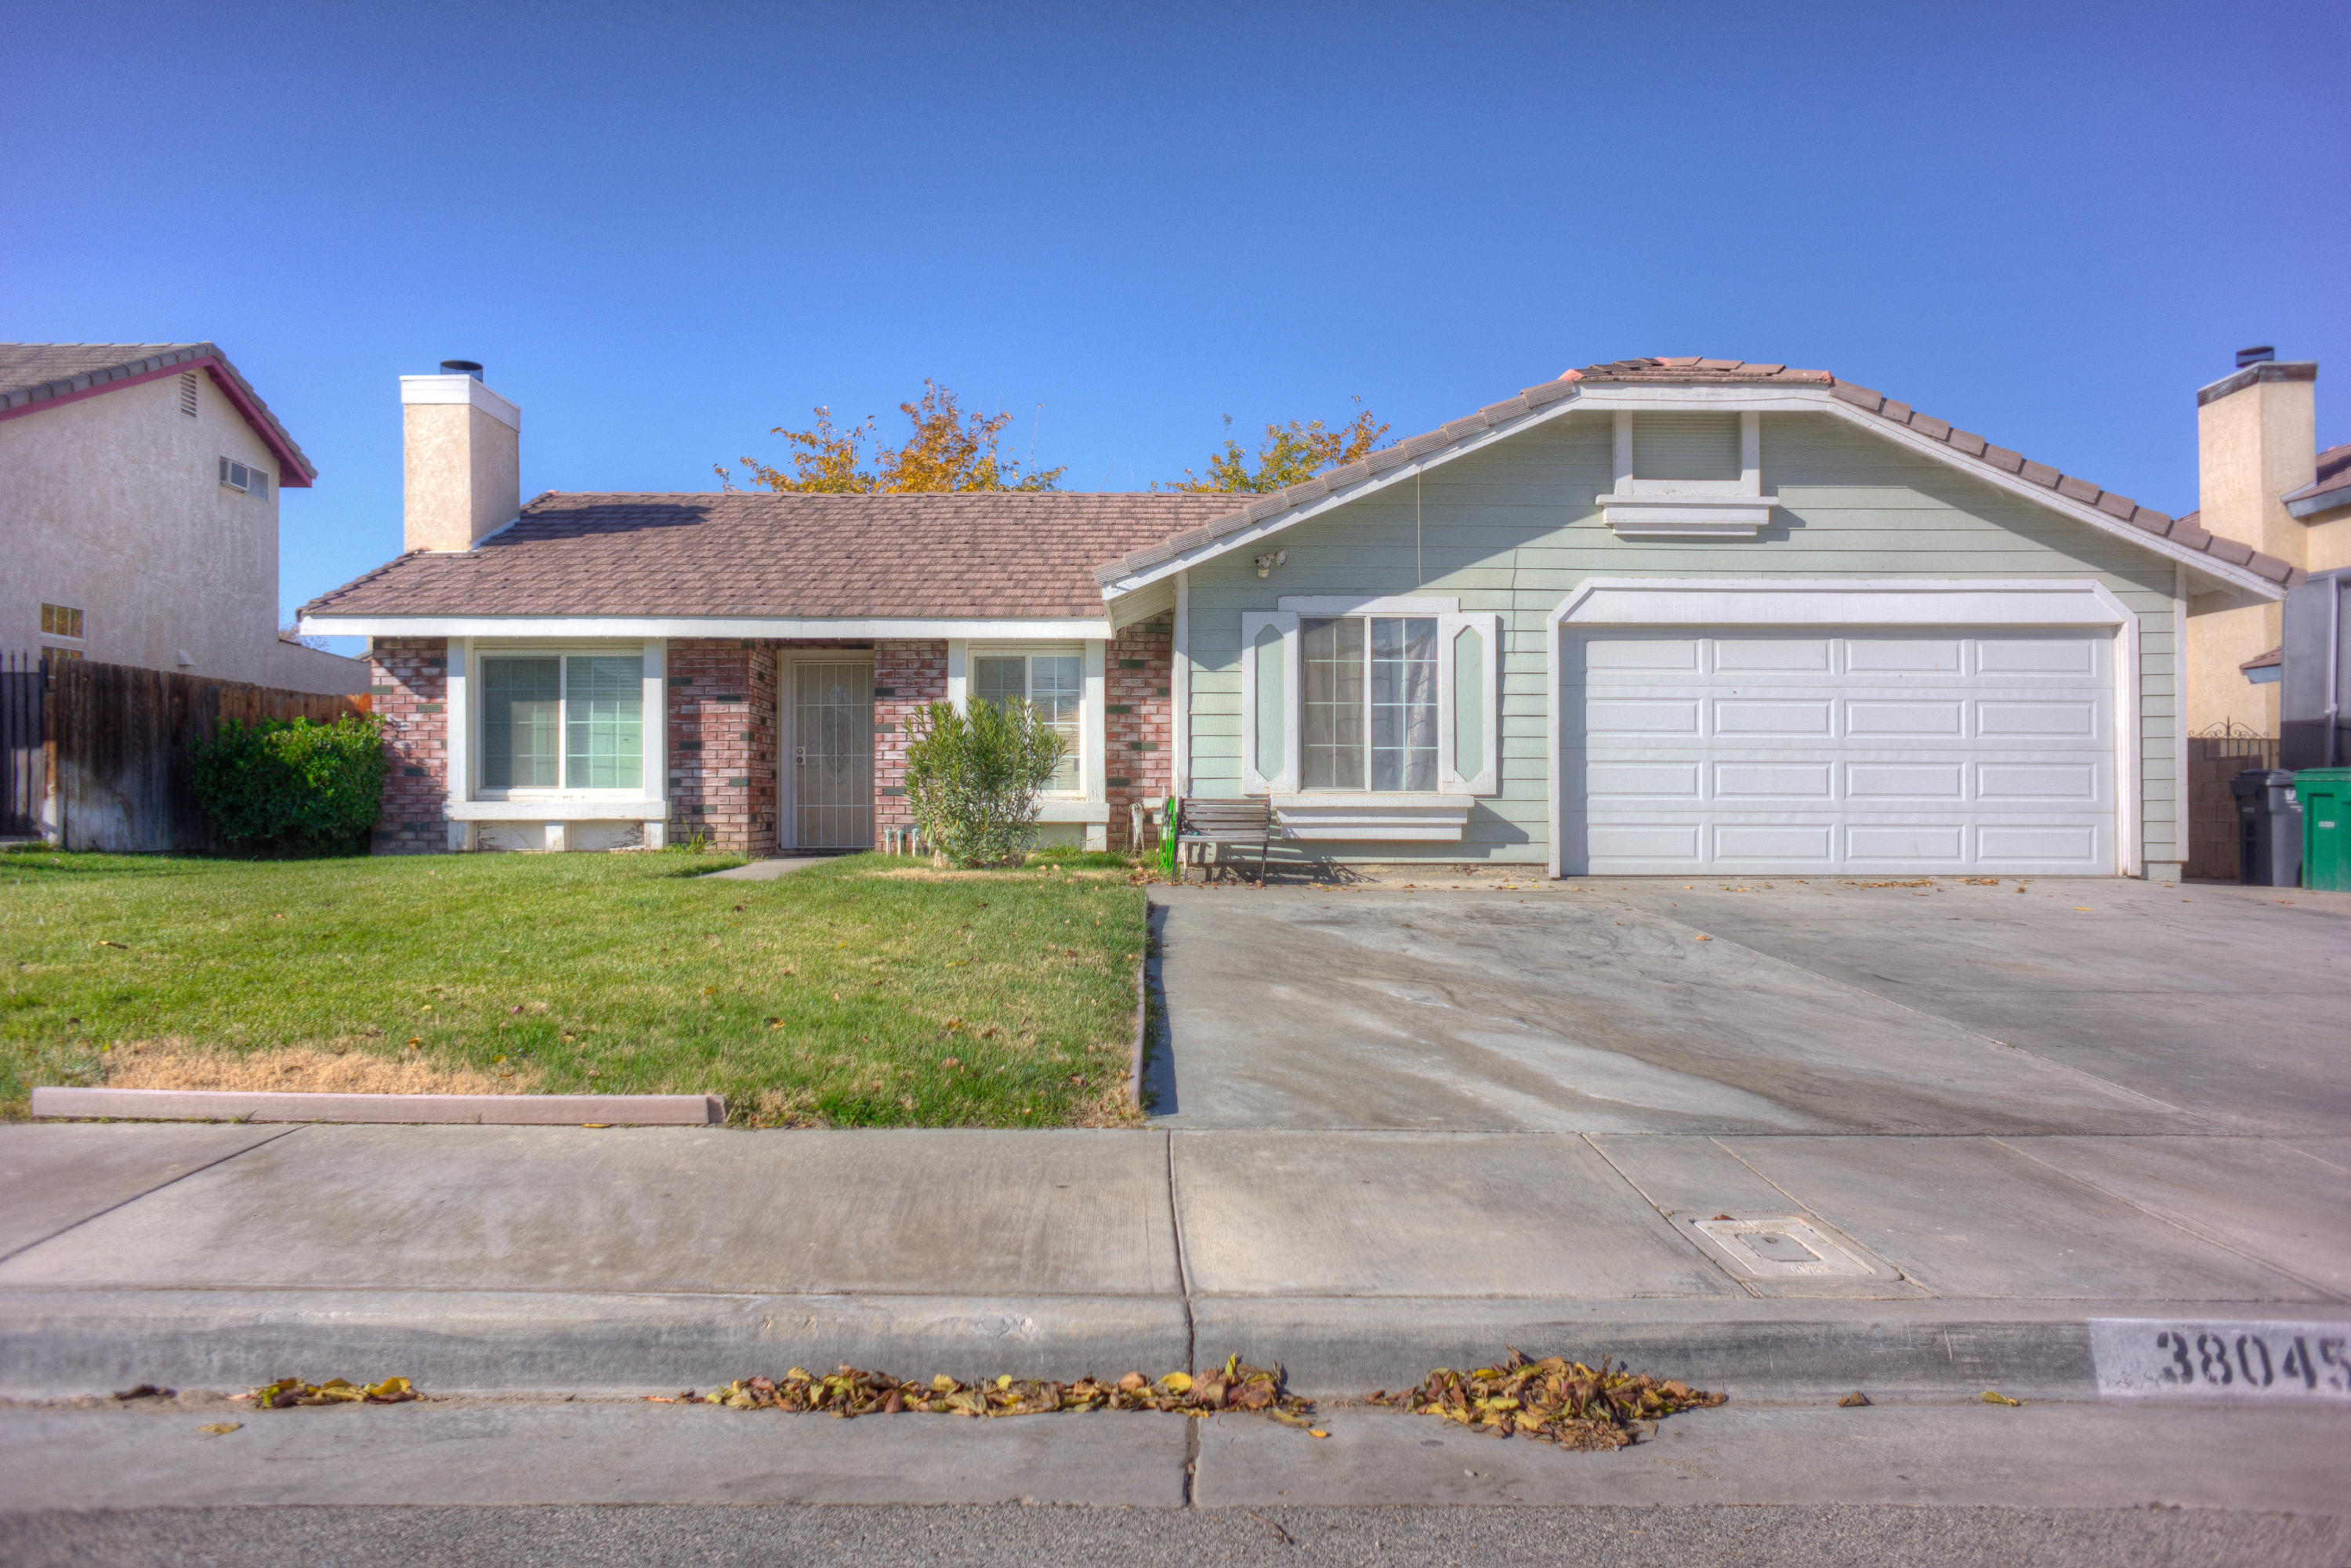 38045  Boxthorn Street, Palmdale in Los Angeles County, CA 93552 Home for Sale